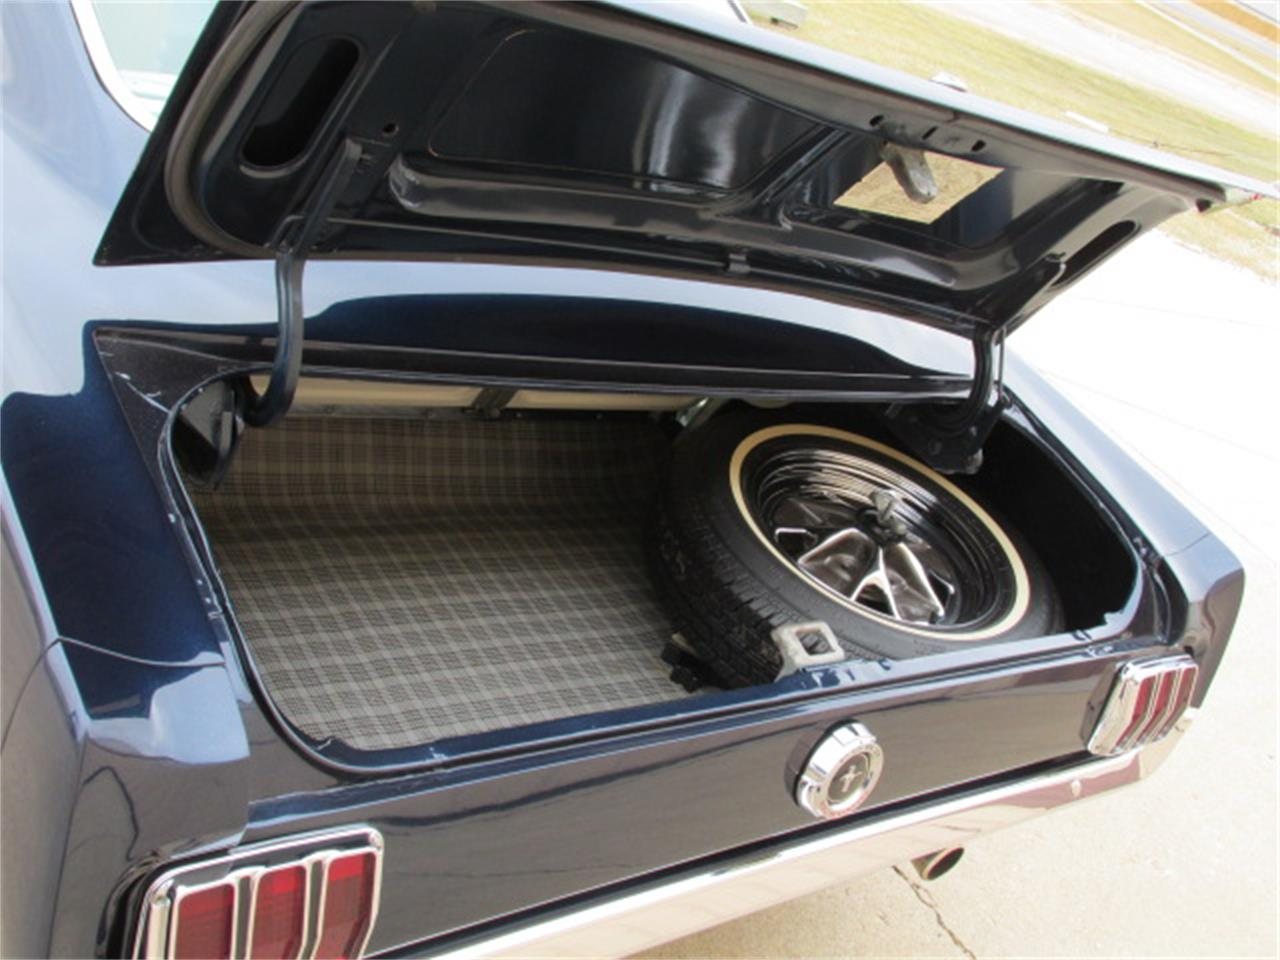 Large Picture of Classic '65 Mustang - $48,000.00 Offered by a Private Seller - P1IH